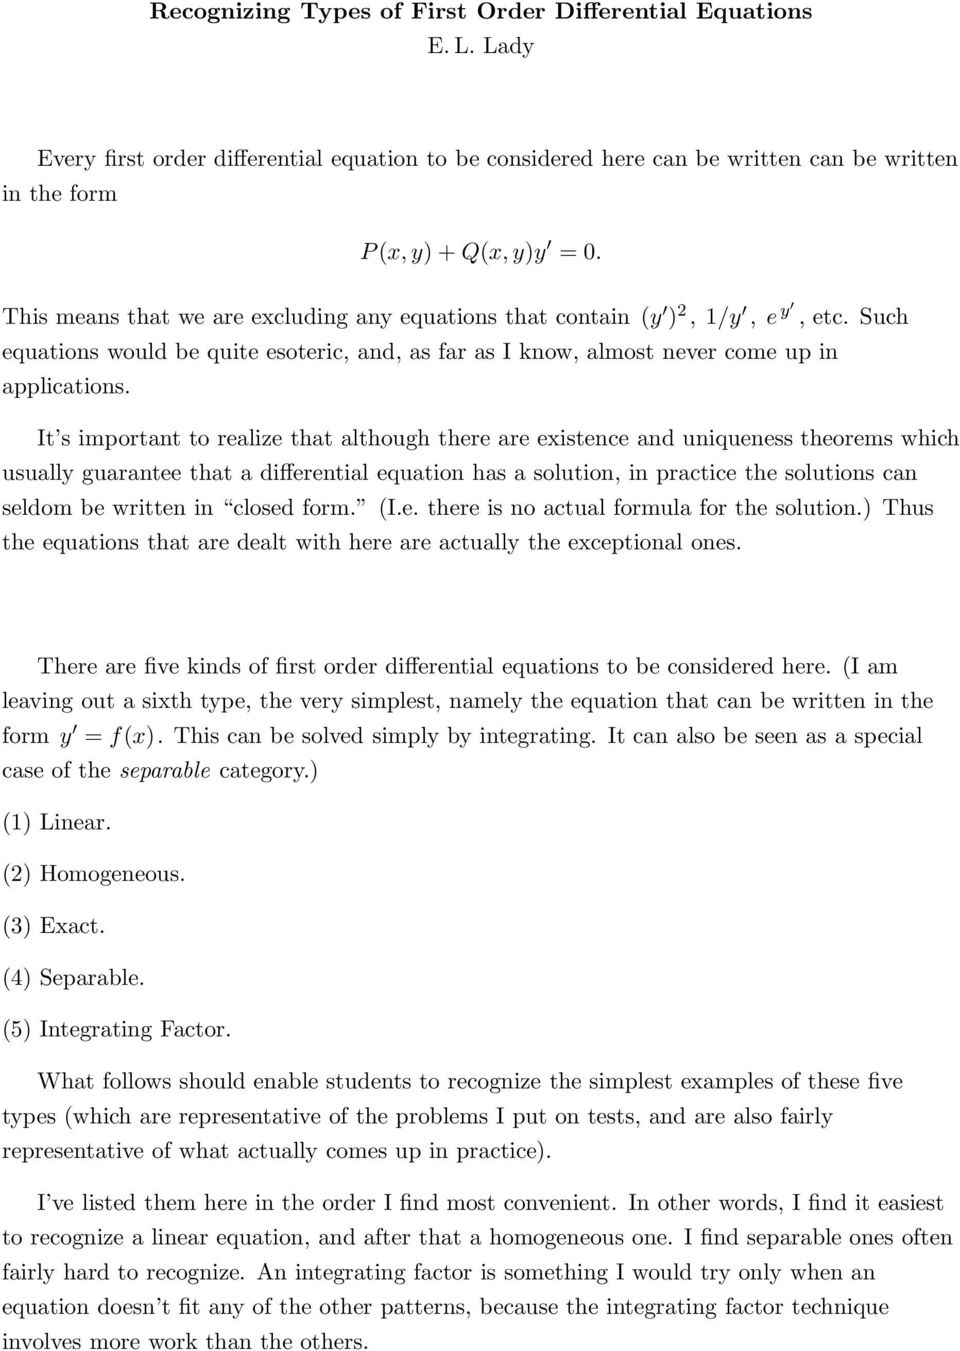 Recognizing Types of First Order Differential Equations